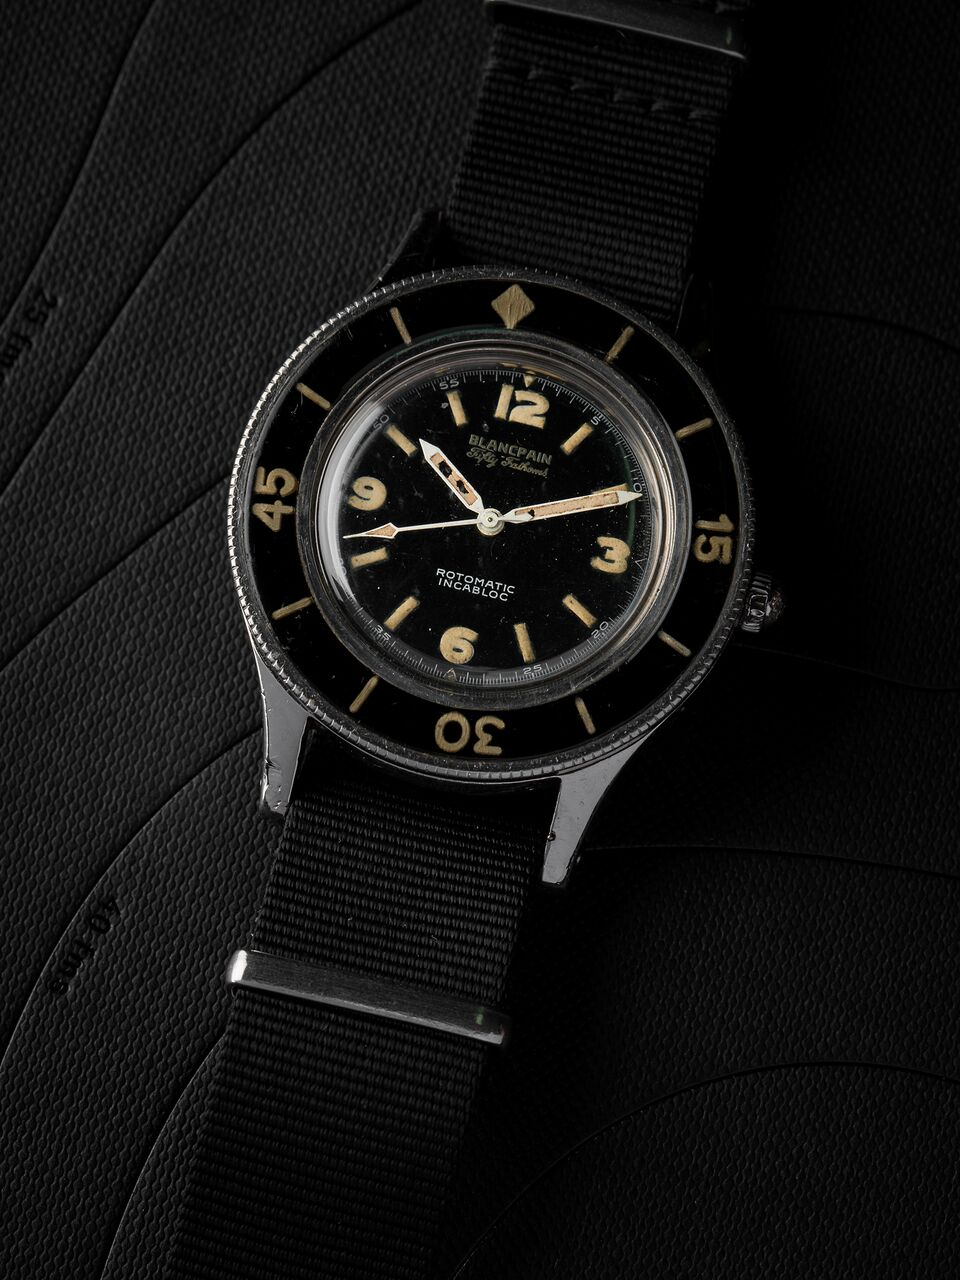 A Blancpain Fifty Fathoms. The ISO 6425 standard launched in 1996 took as inspiration some of the specifications and requirements of the Blancpain Fifty Fathoms